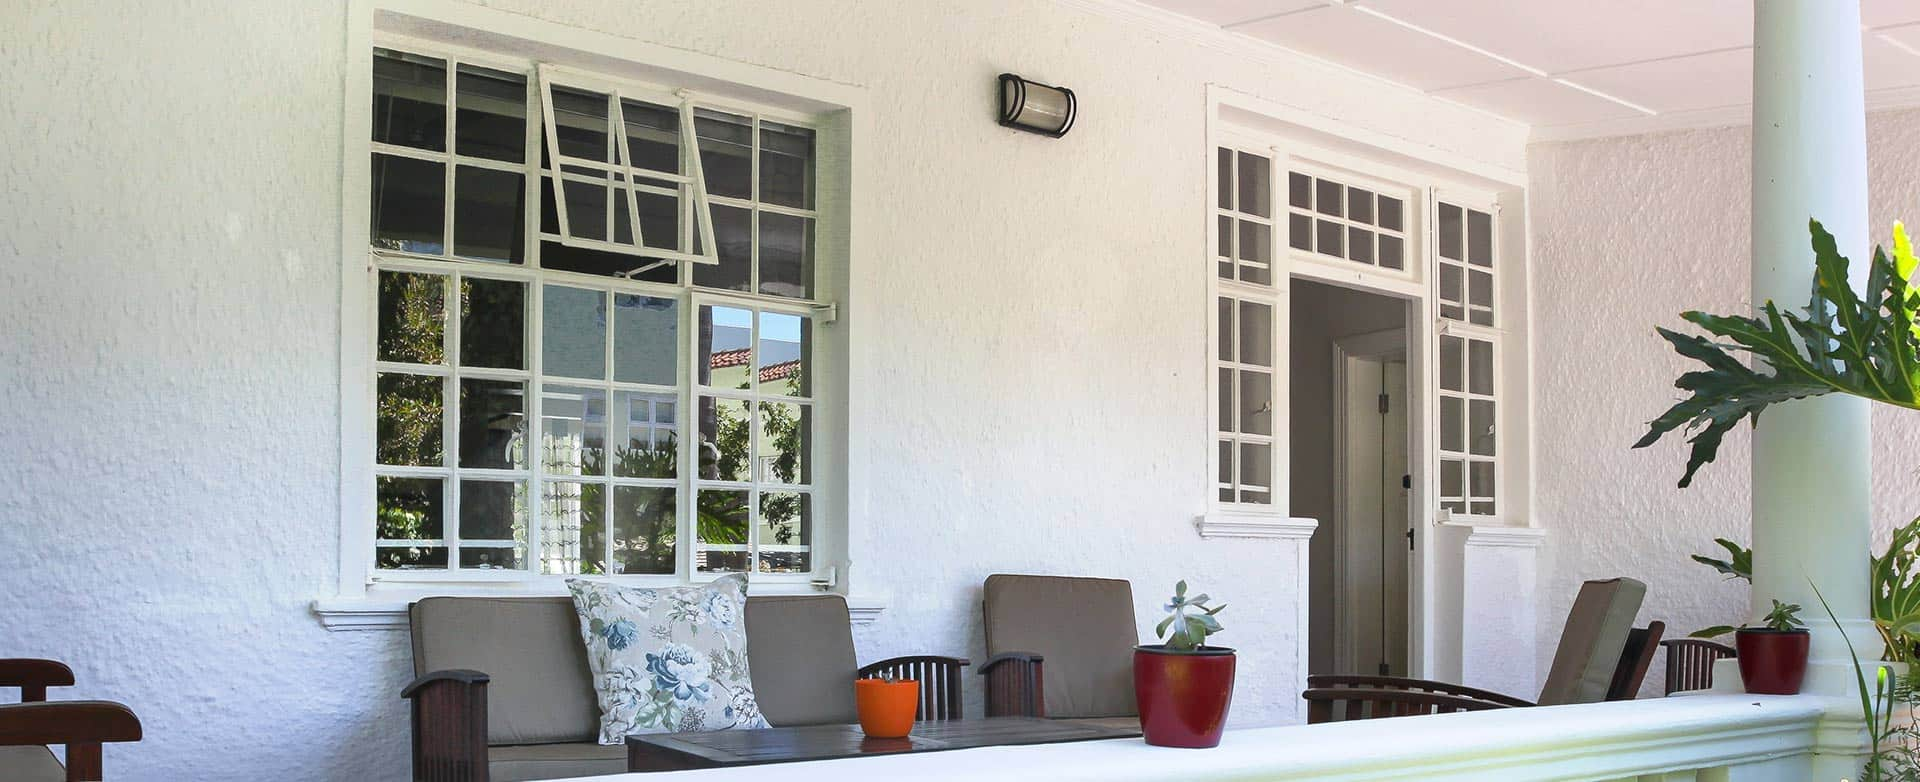 Self Catering apartments patio